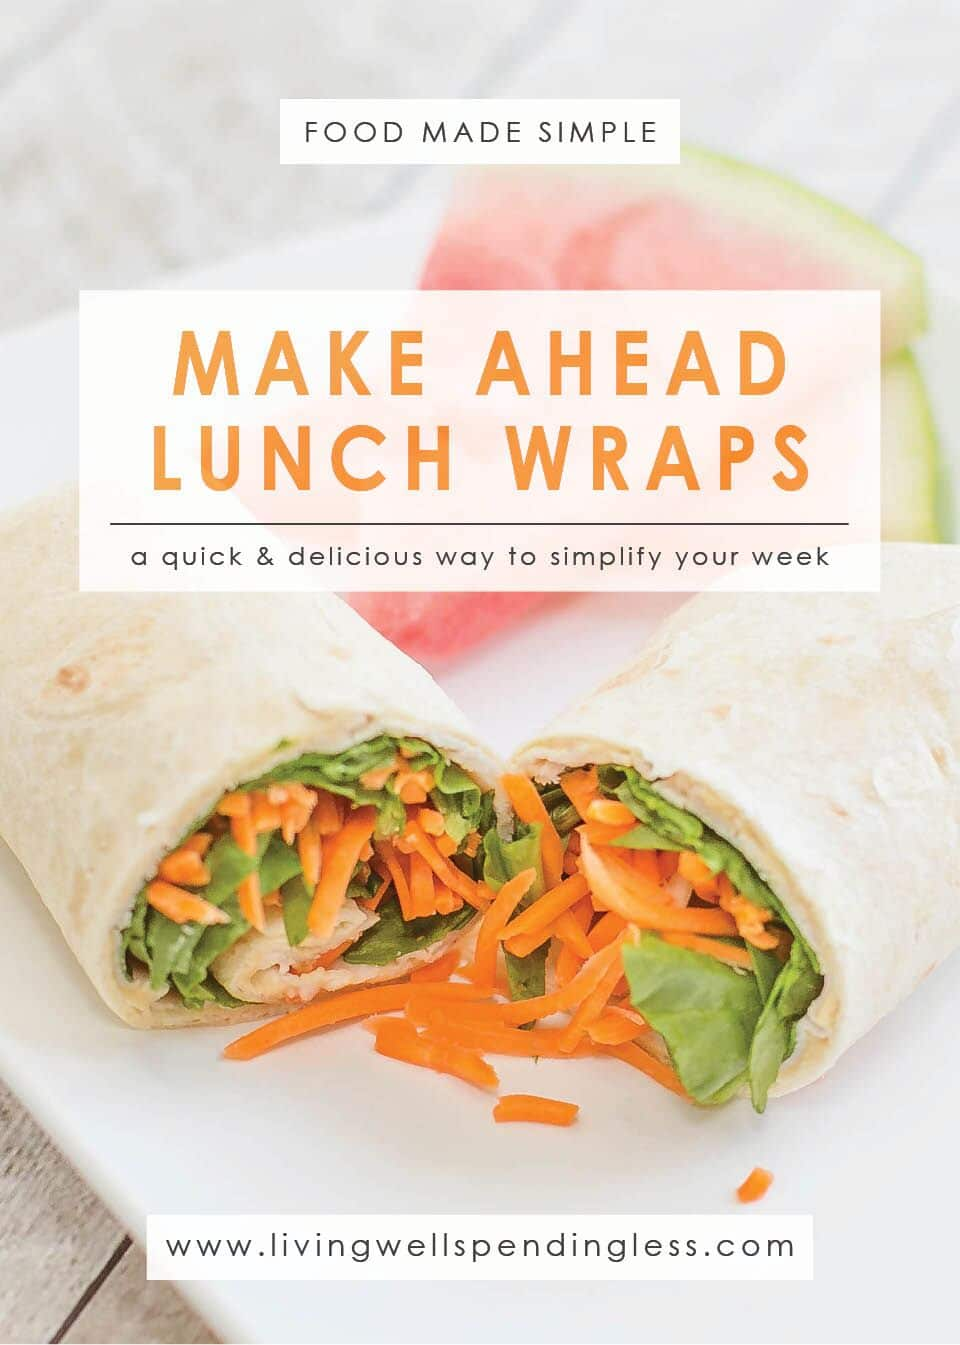 Make ahead lunch wraps--a quick and delicious way to simplify your week.